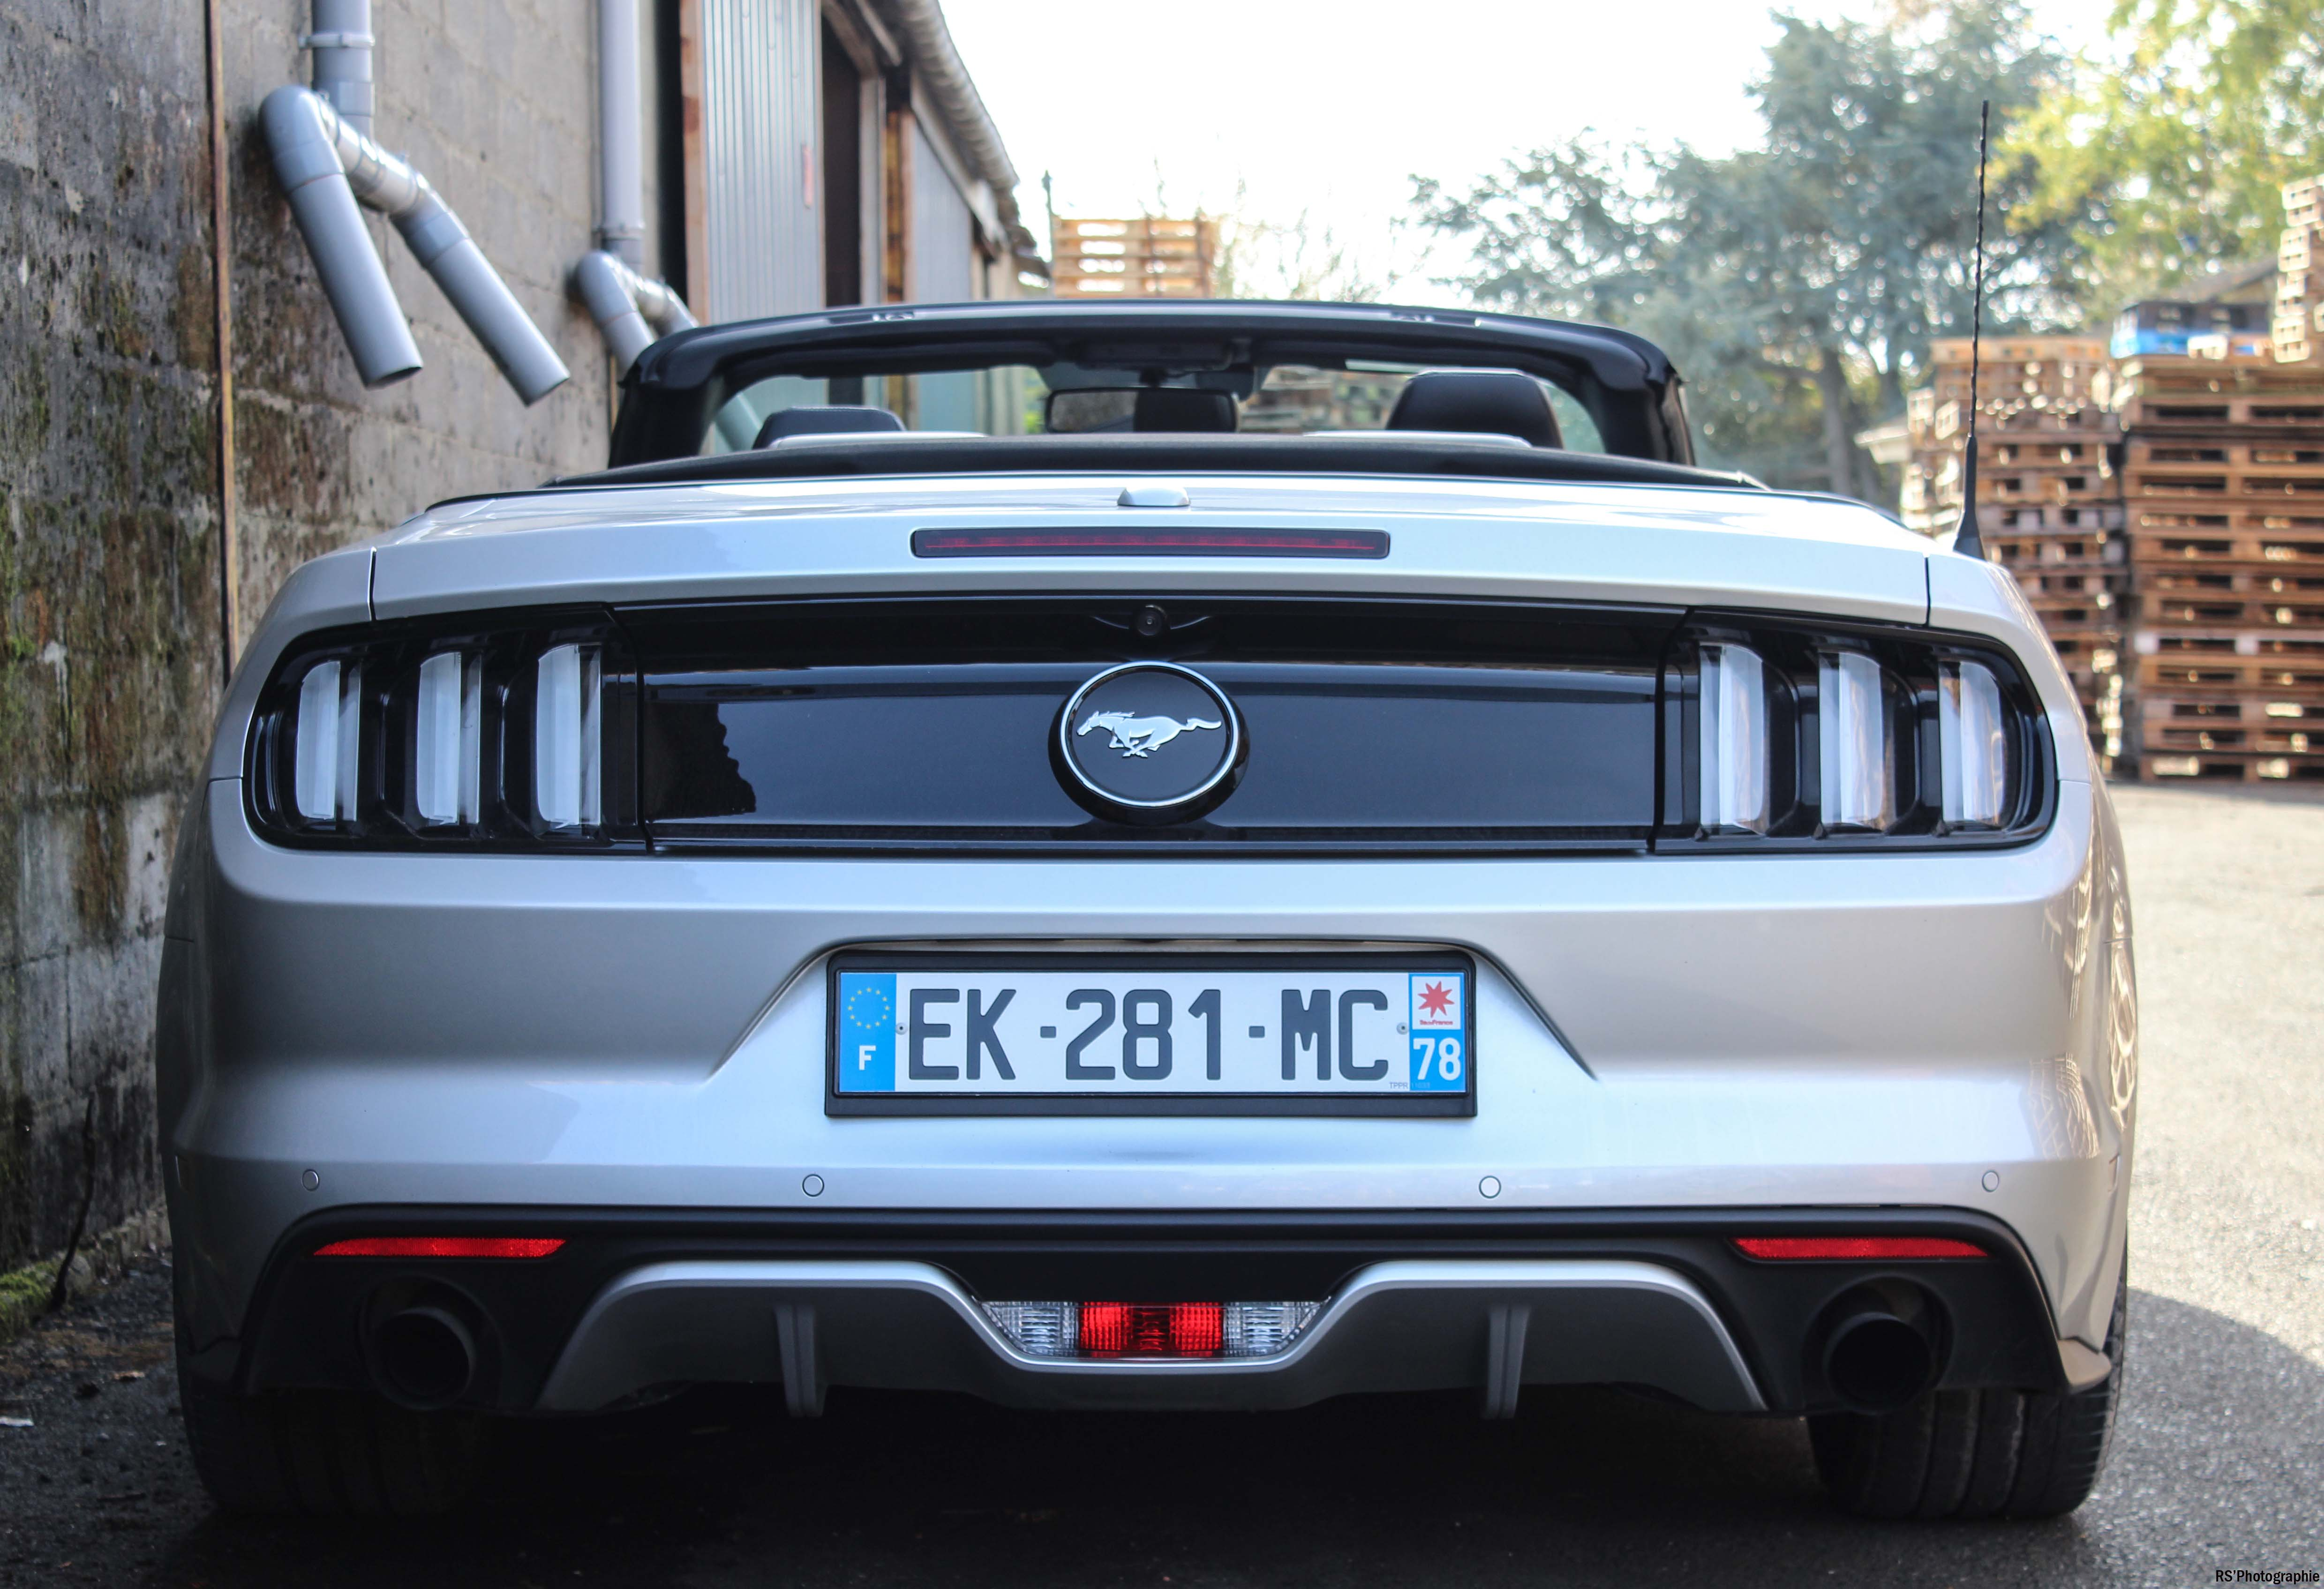 fordmustangeconvertible36-ford-mustang-convertible-ecoboost-arriere-rear-Arnaud Demasier-RSPhotographie